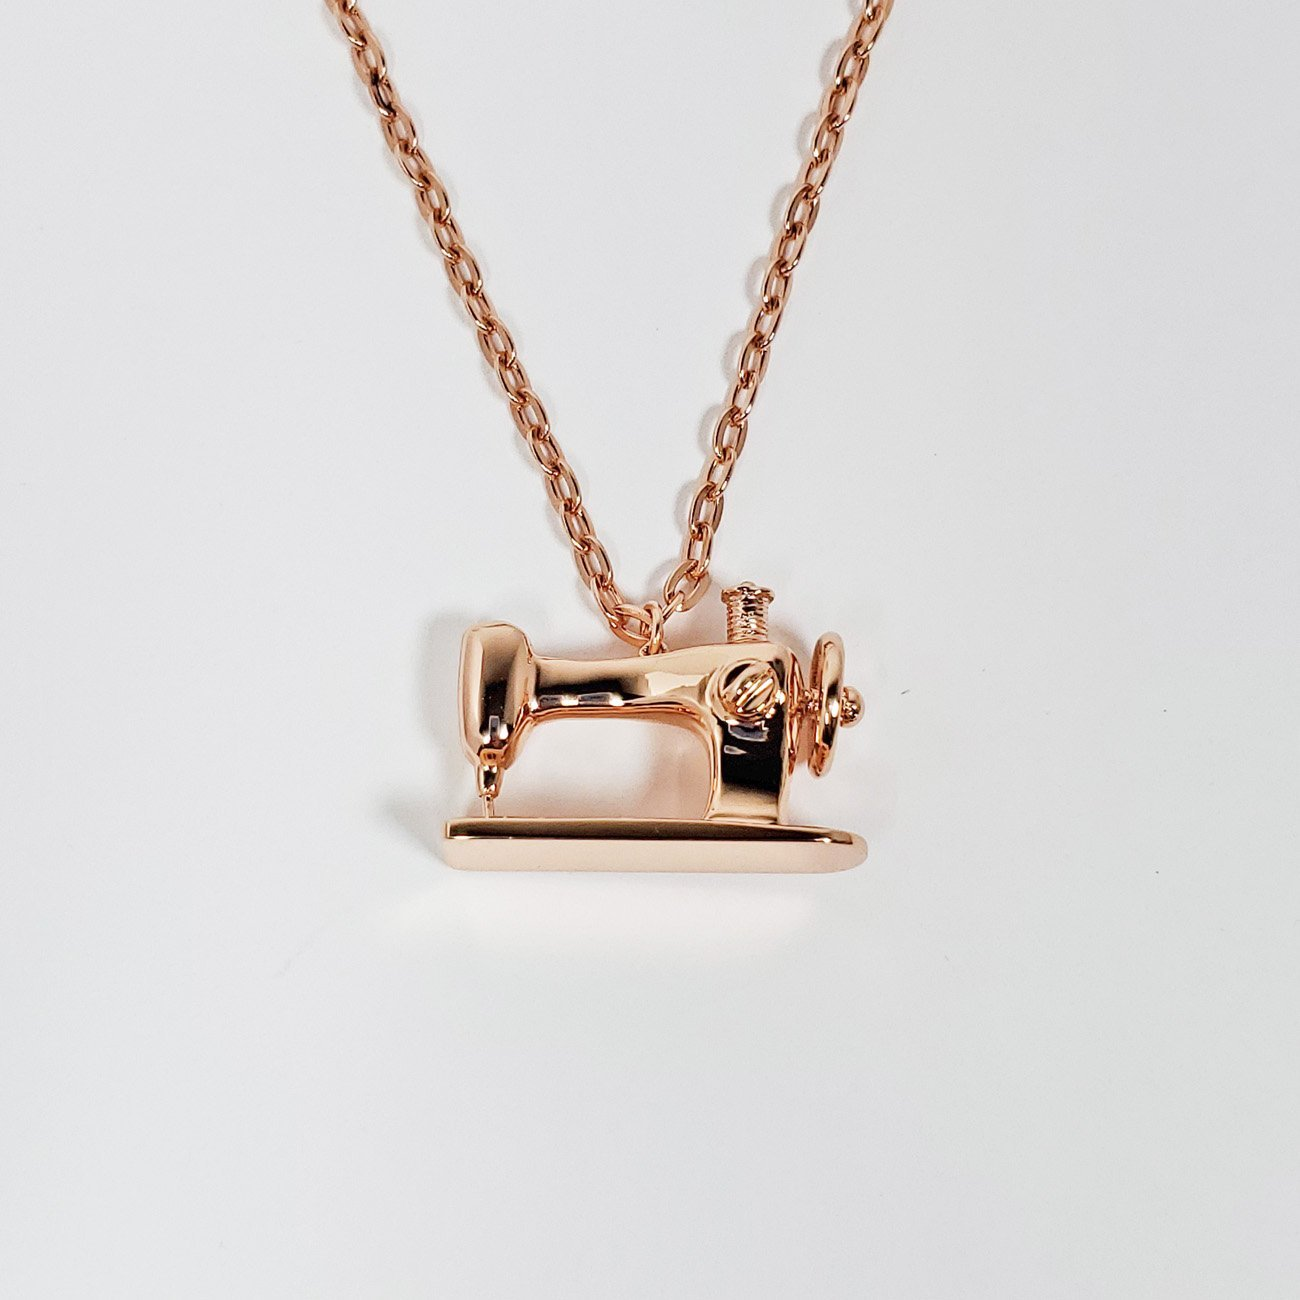 Sewing Machine Long Pendant Necklace Rose Gold from the Quilt Spot